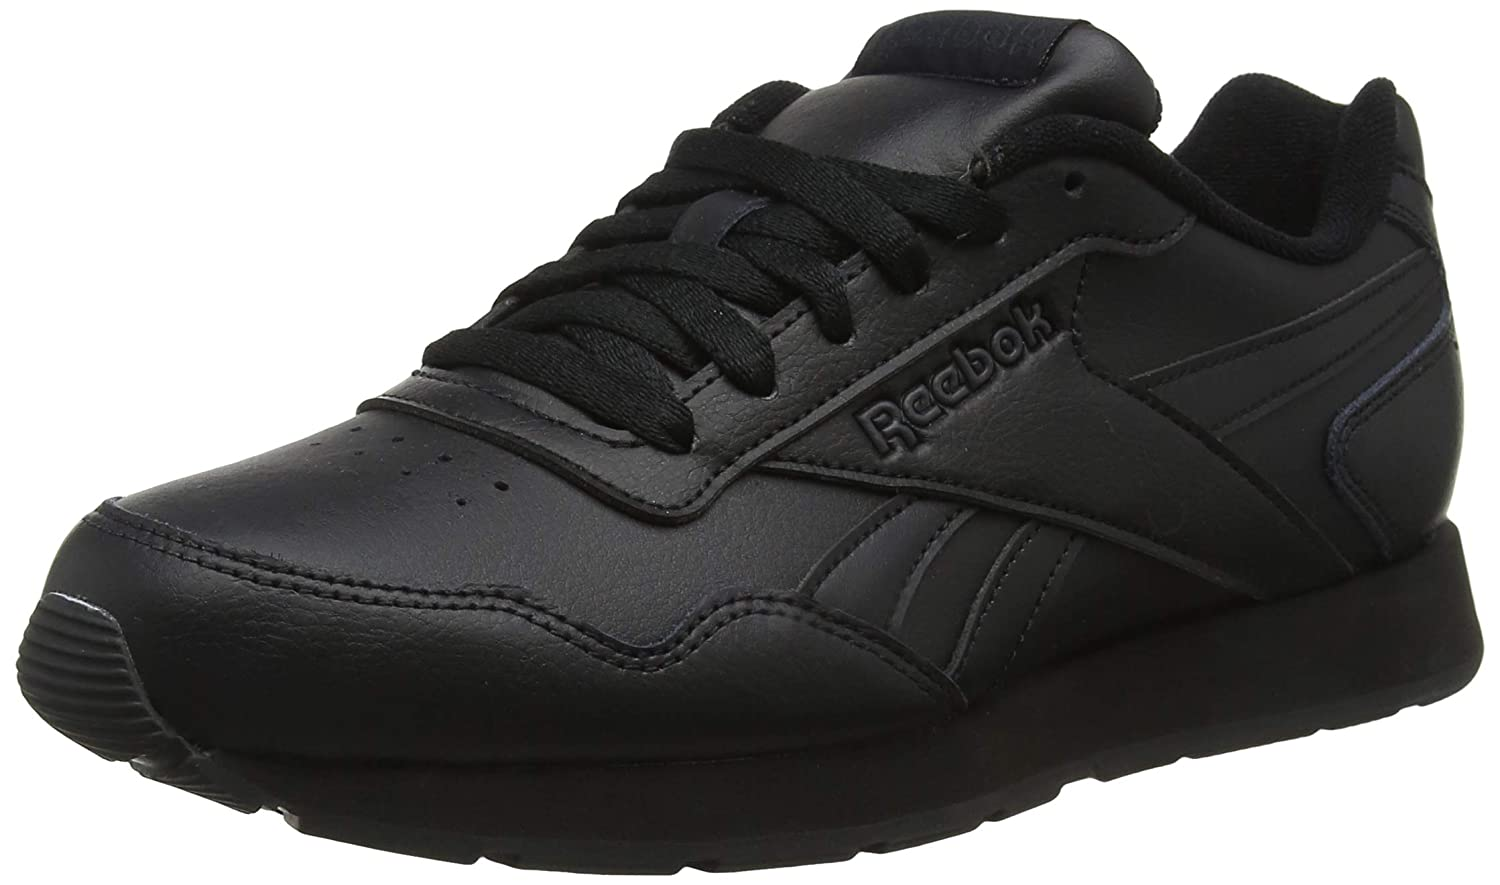 Womens Reebok Royal Glide RPL Clip Online India Classics